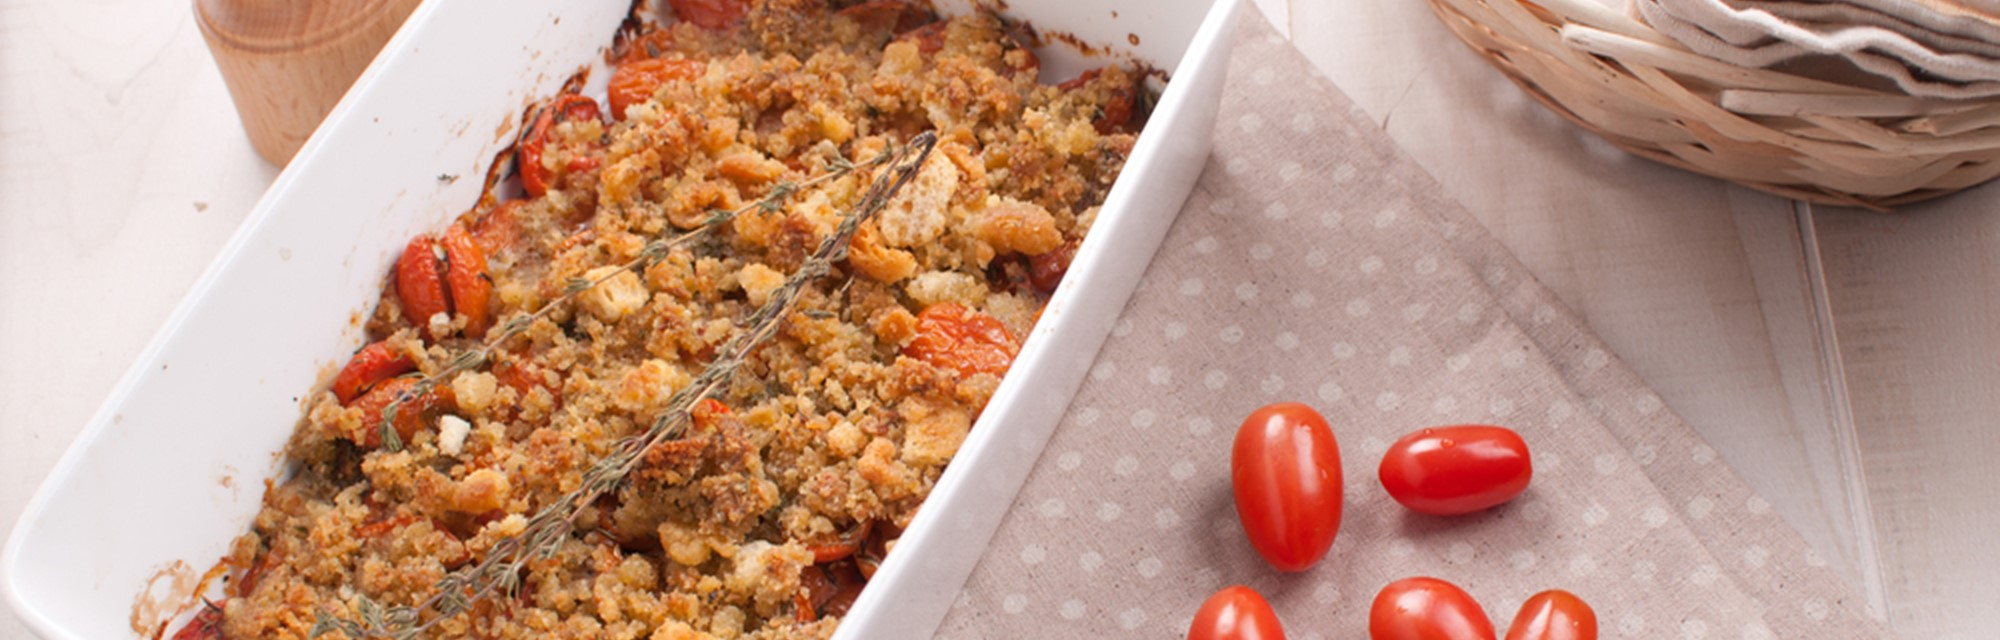 Crunchy baked tomato & onions - Crunchy Baked